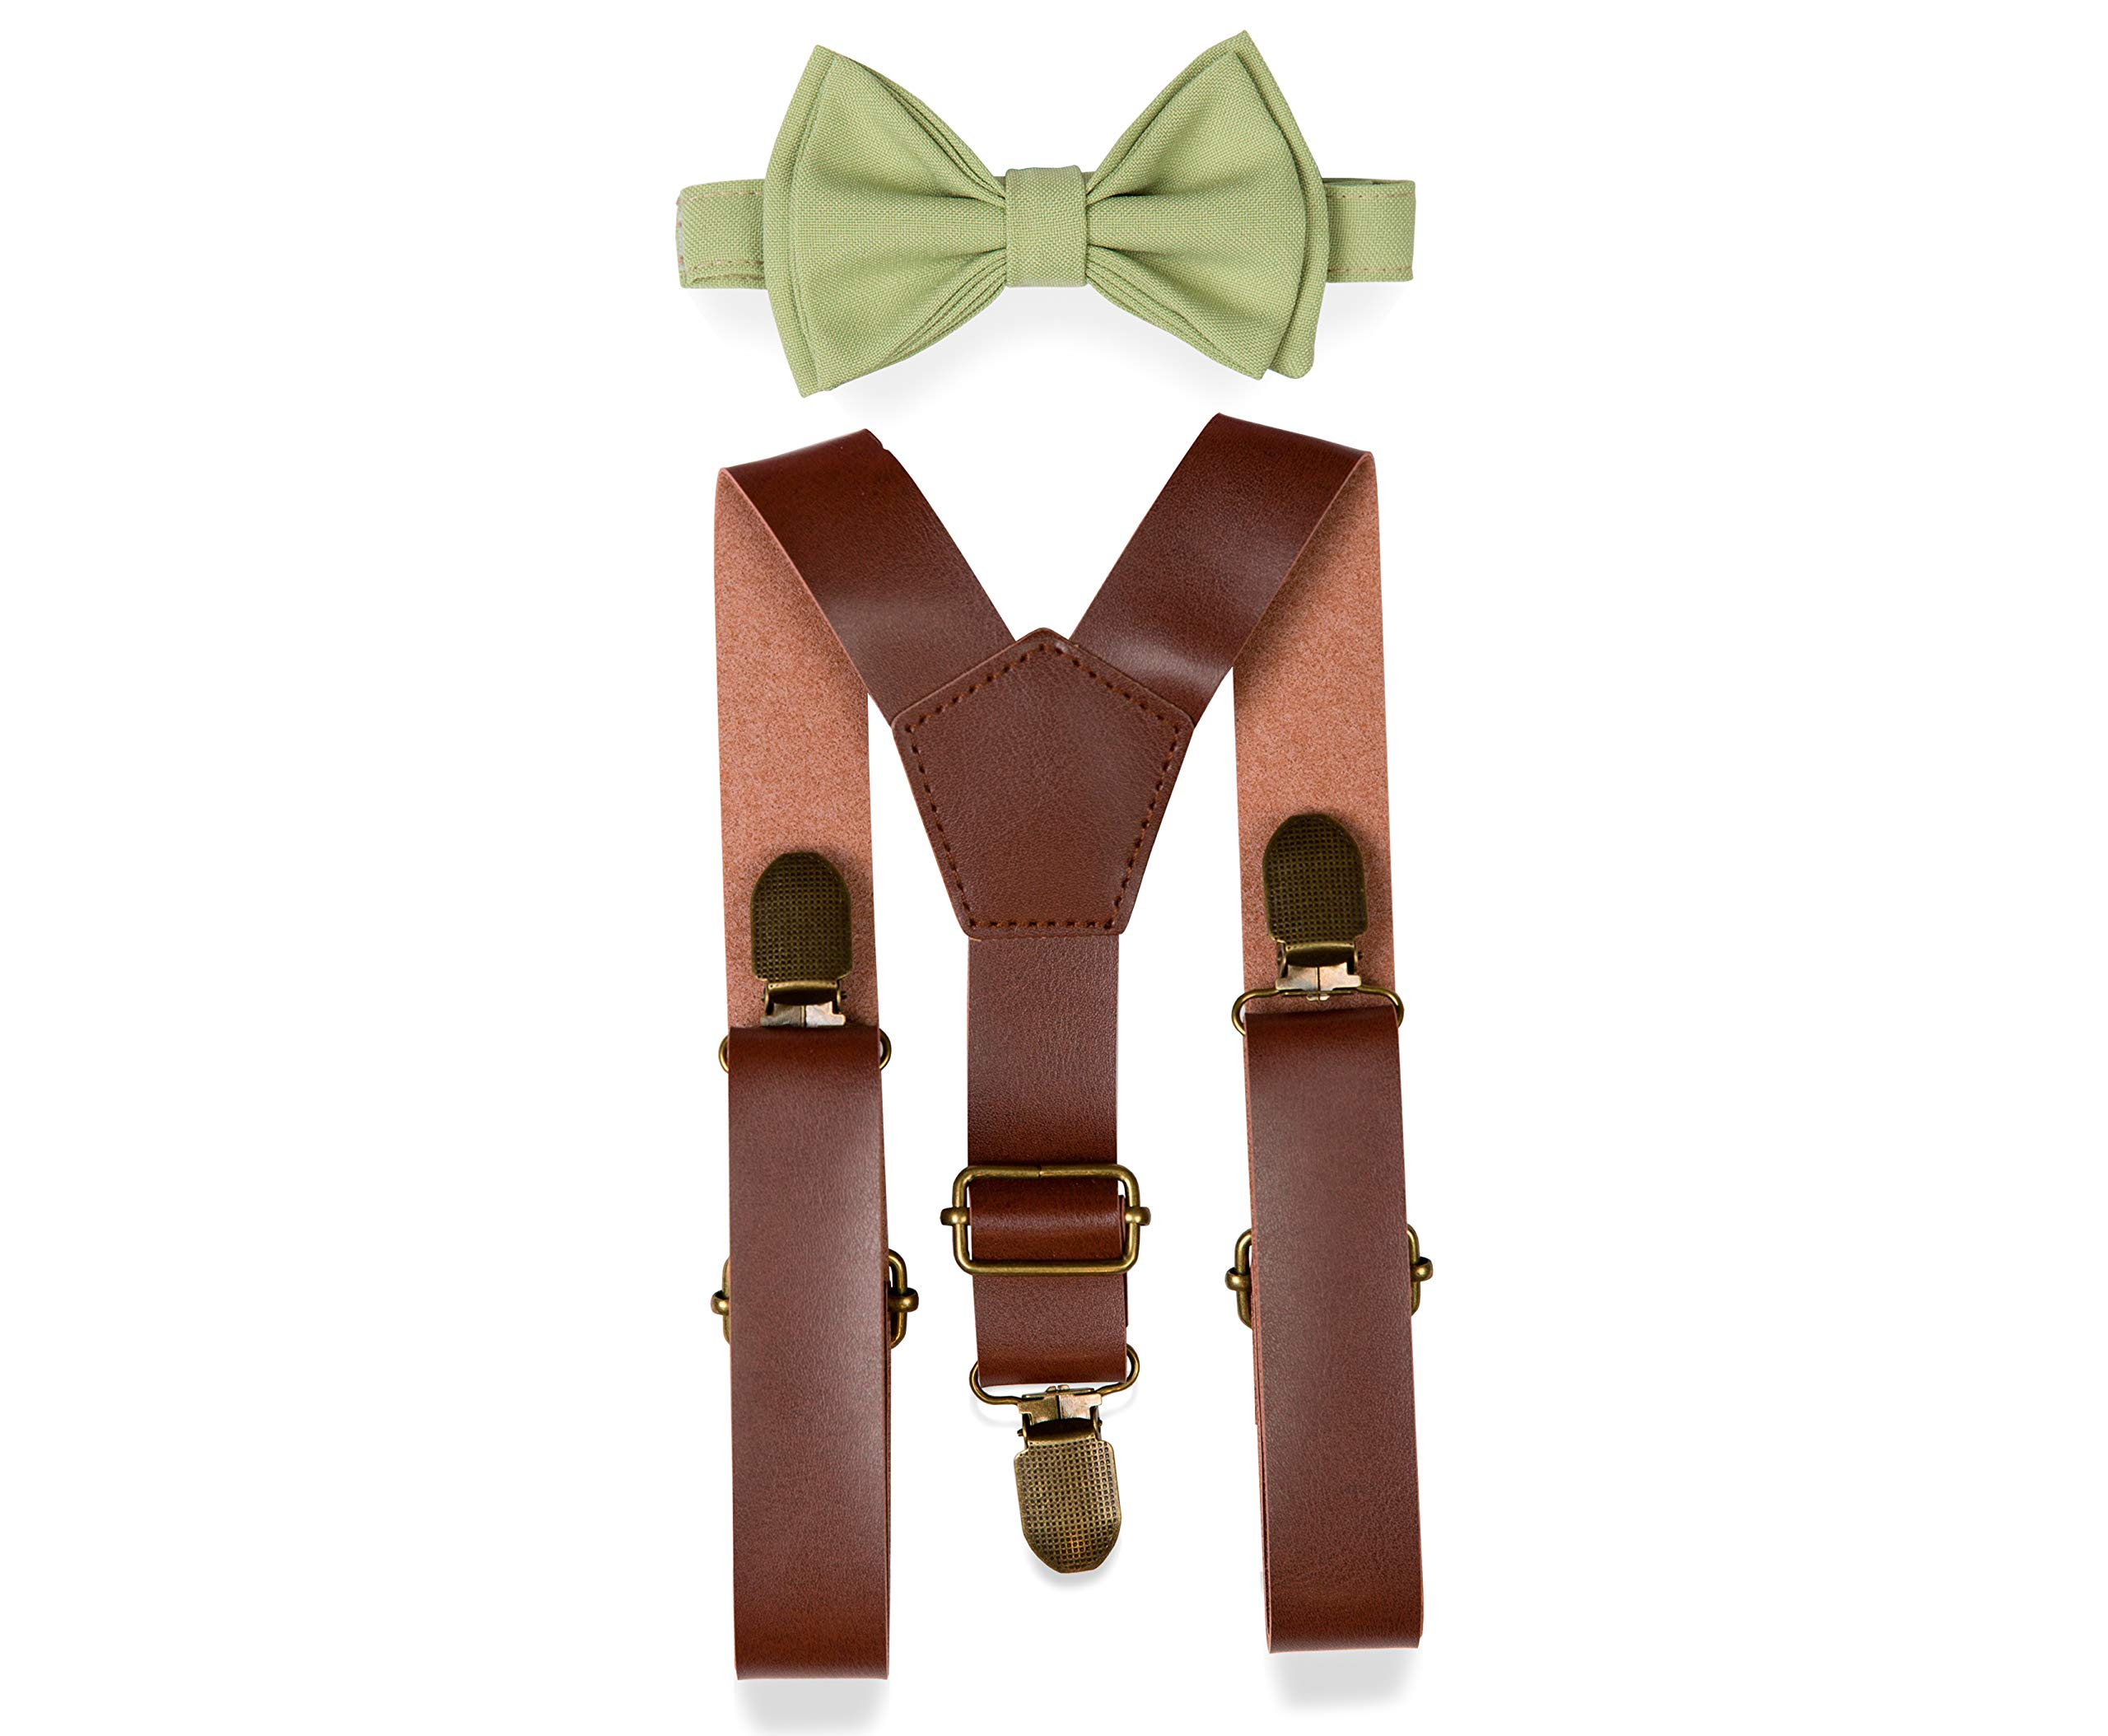 Brown PU Leather Suspenders Bow Tie Combo for Baby Toddler Boy Men (1. Baby (6-18 mo), Brown Leather Suspenders, Sage Bow Tie)